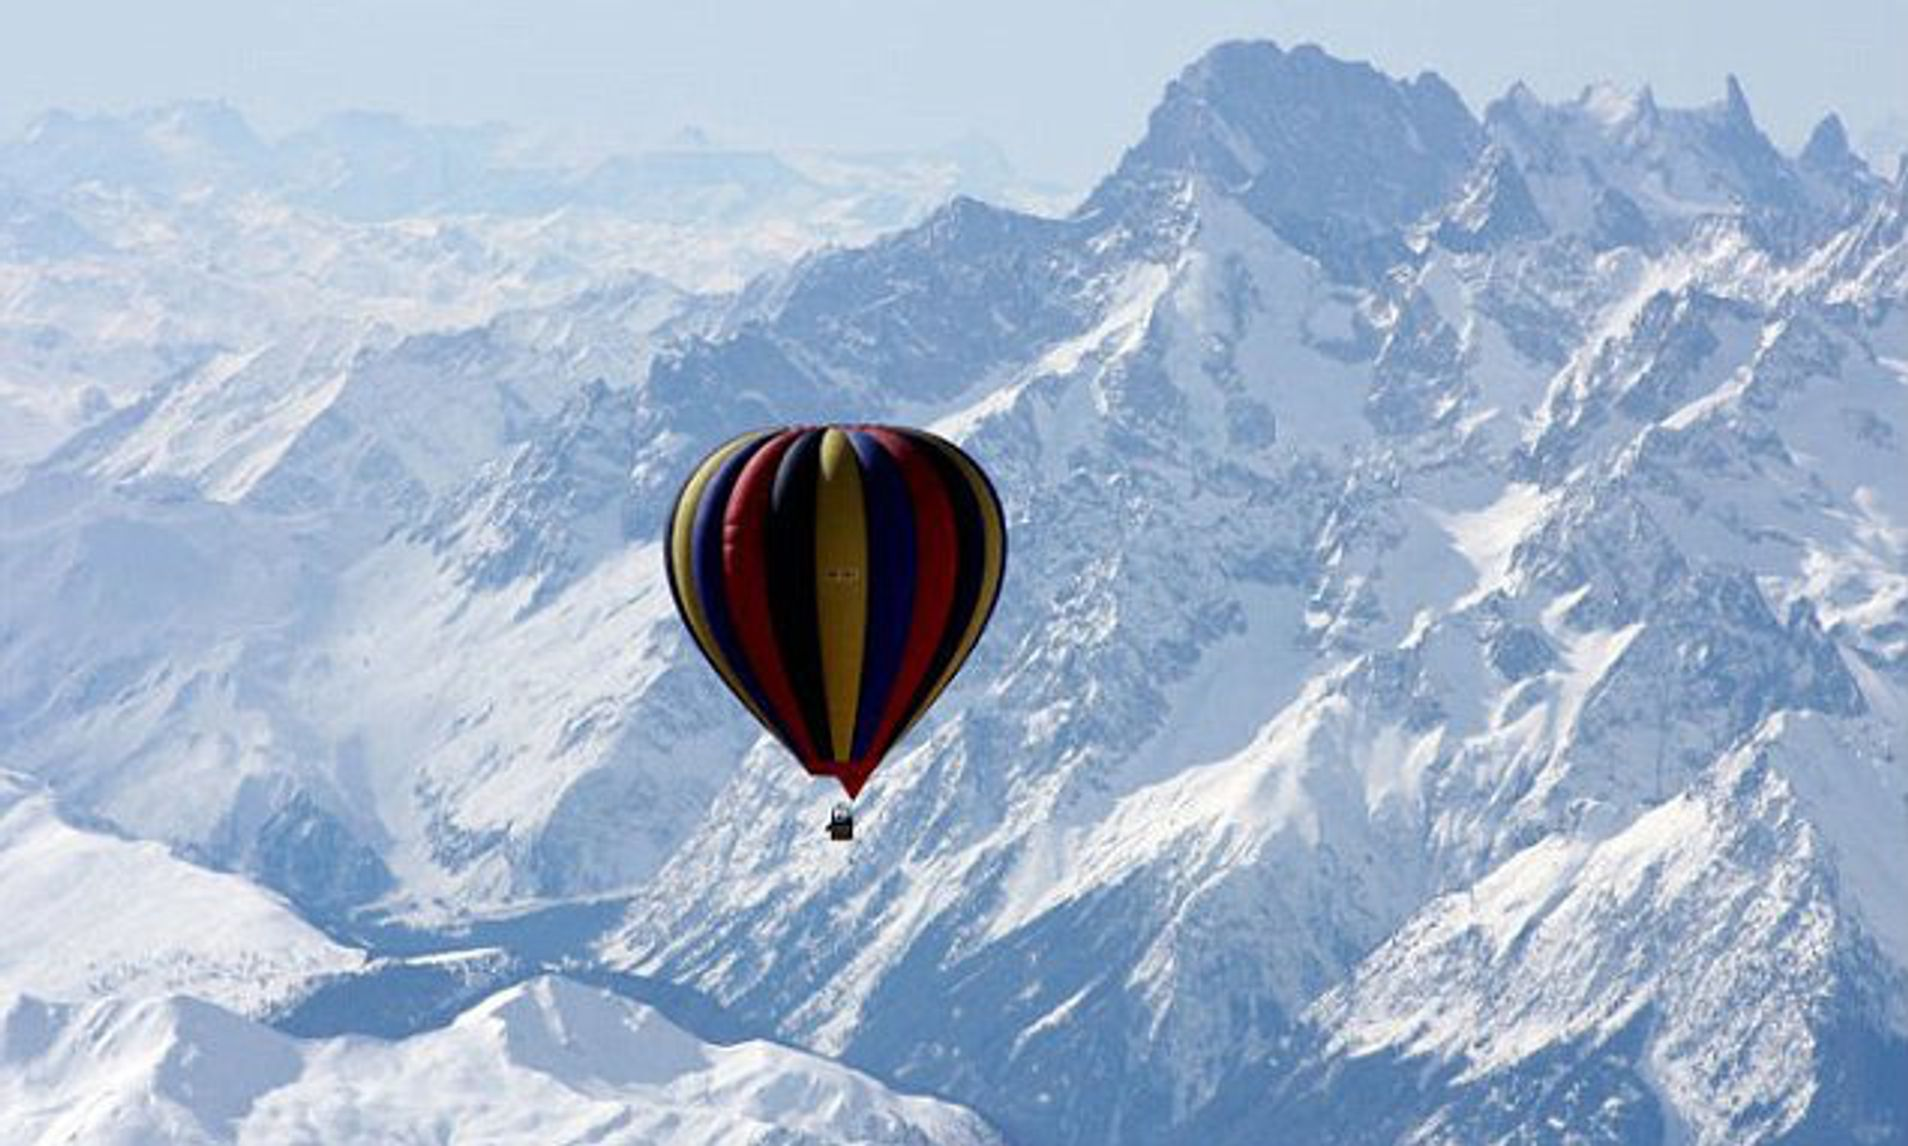 Hot Air Balloon soaring over snowy mountains of Everest range